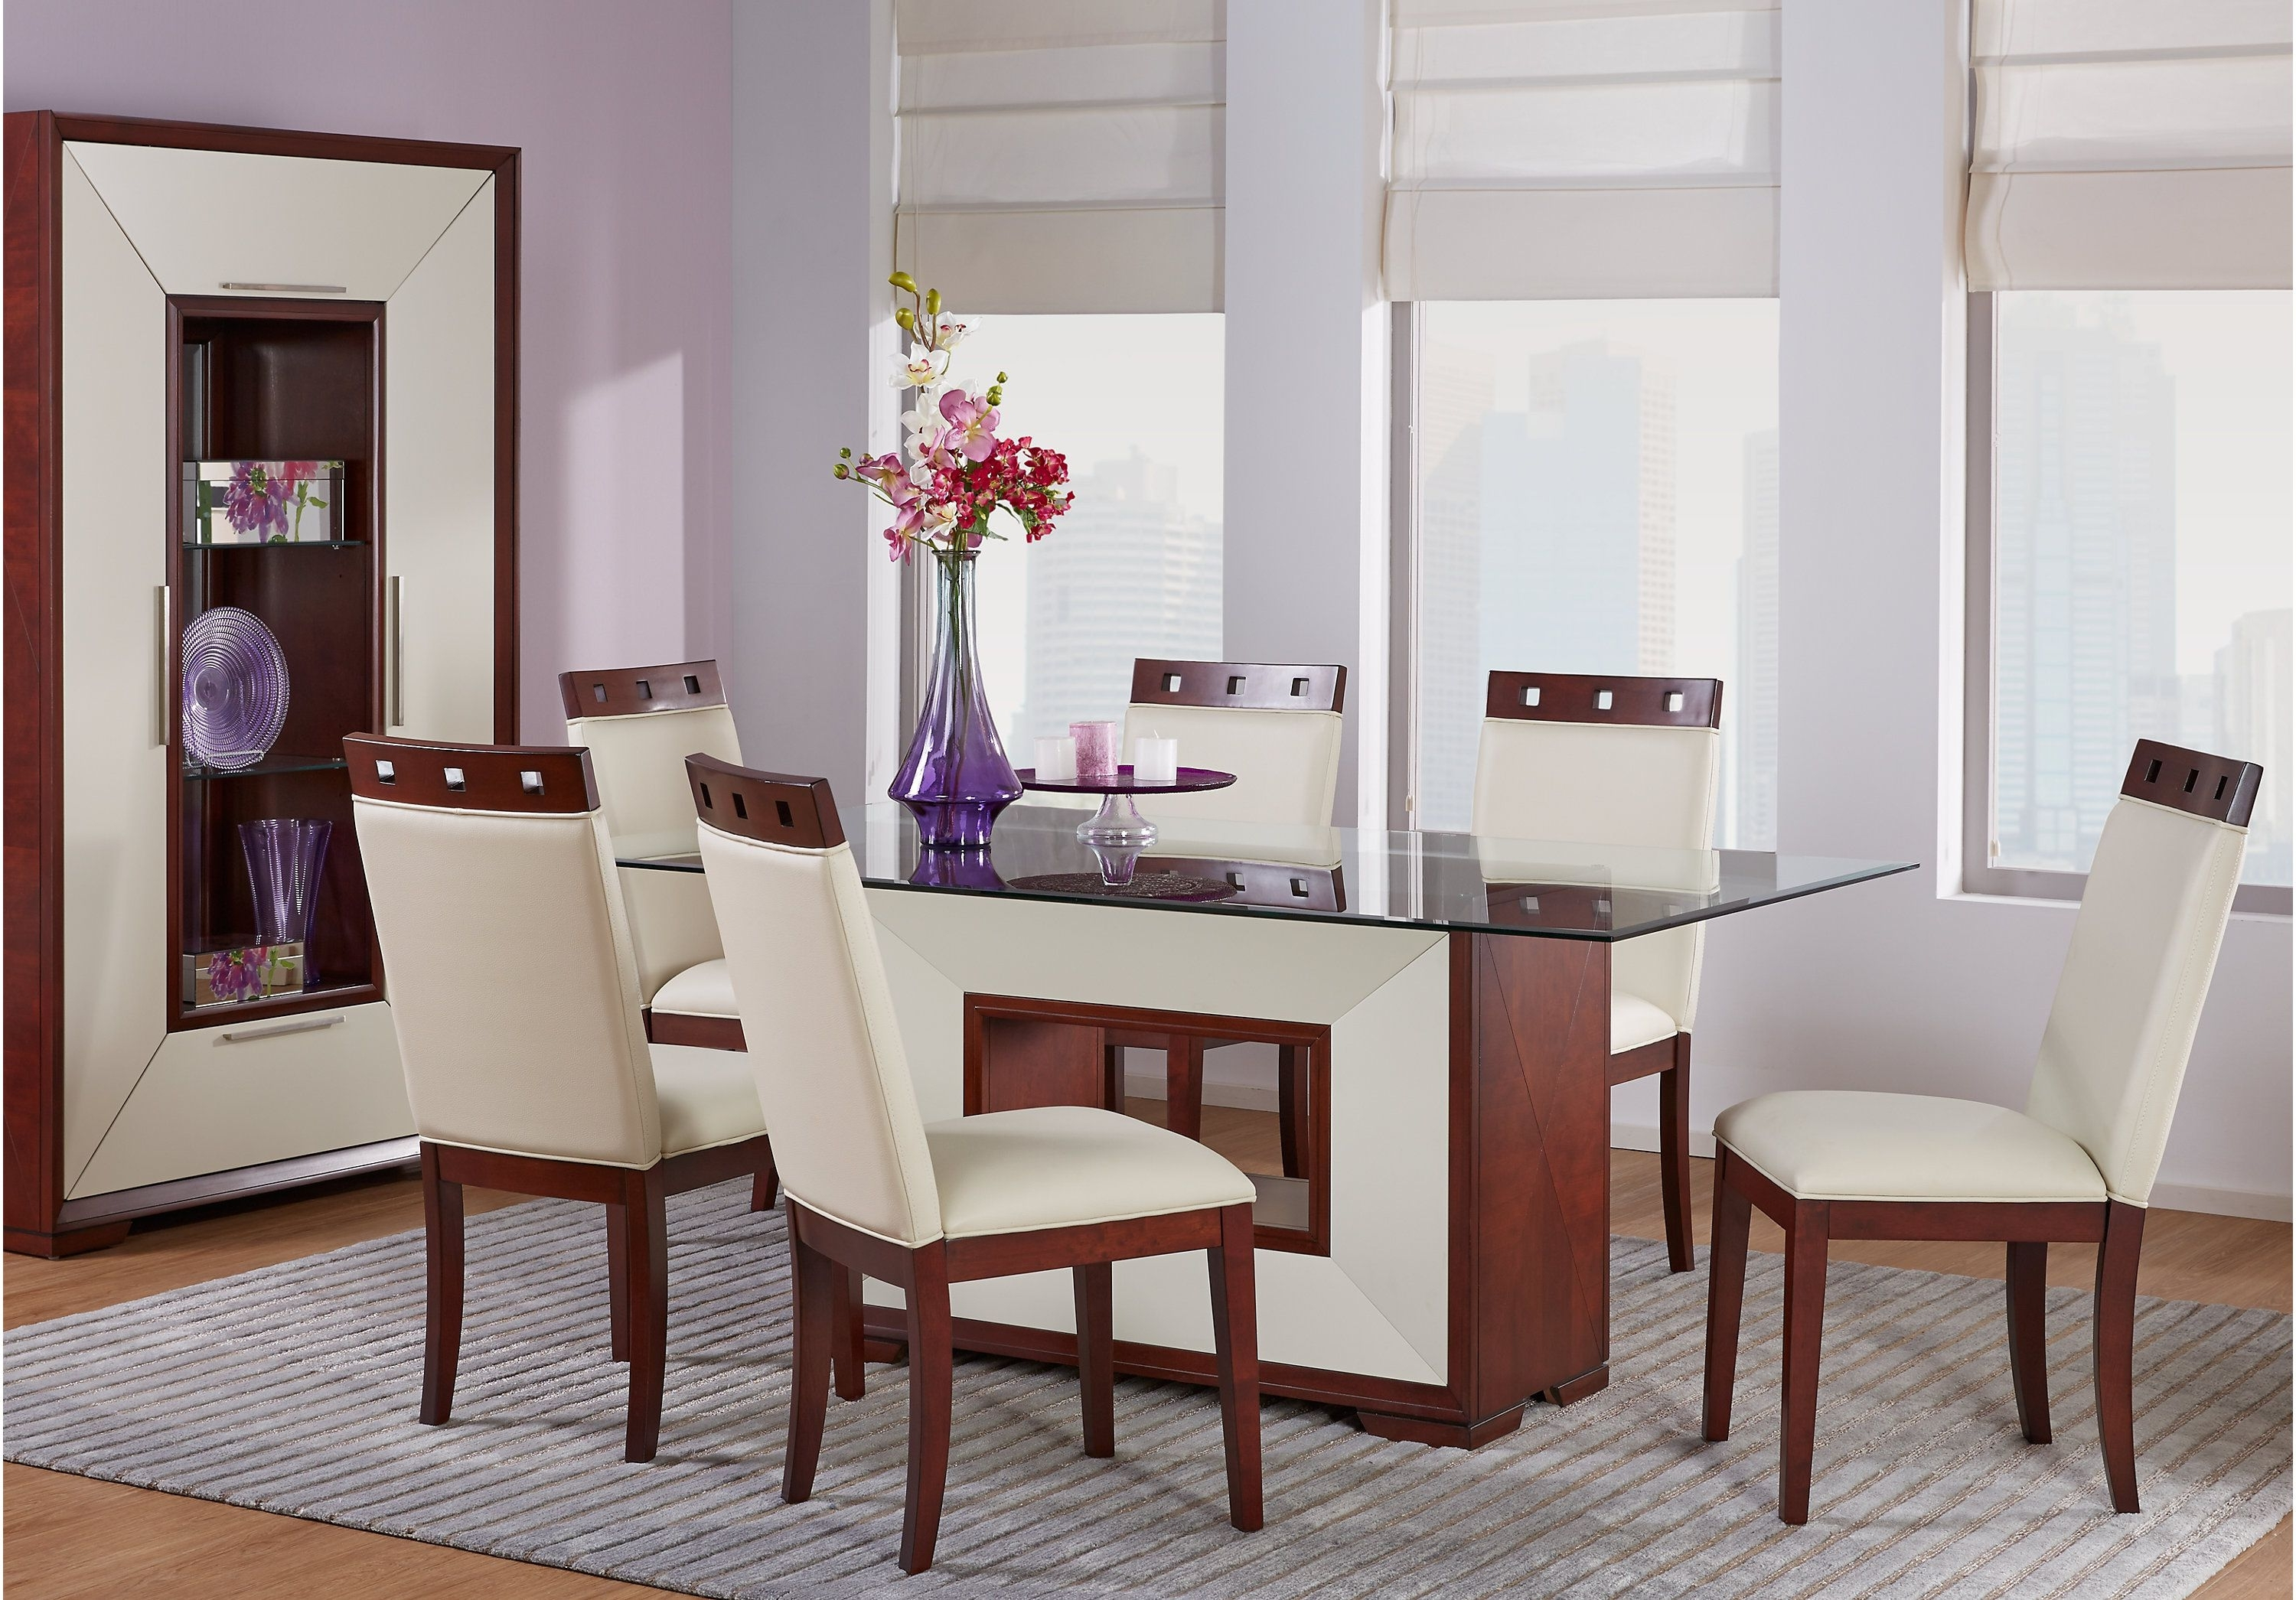 Well Liked Sofia Vergara Savona Ivory 5 Pc Rectangle Dining Room With Glass Top Regarding Palazzo 9 Piece Dining Sets With Pearson White Side Chairs (View 24 of 25)